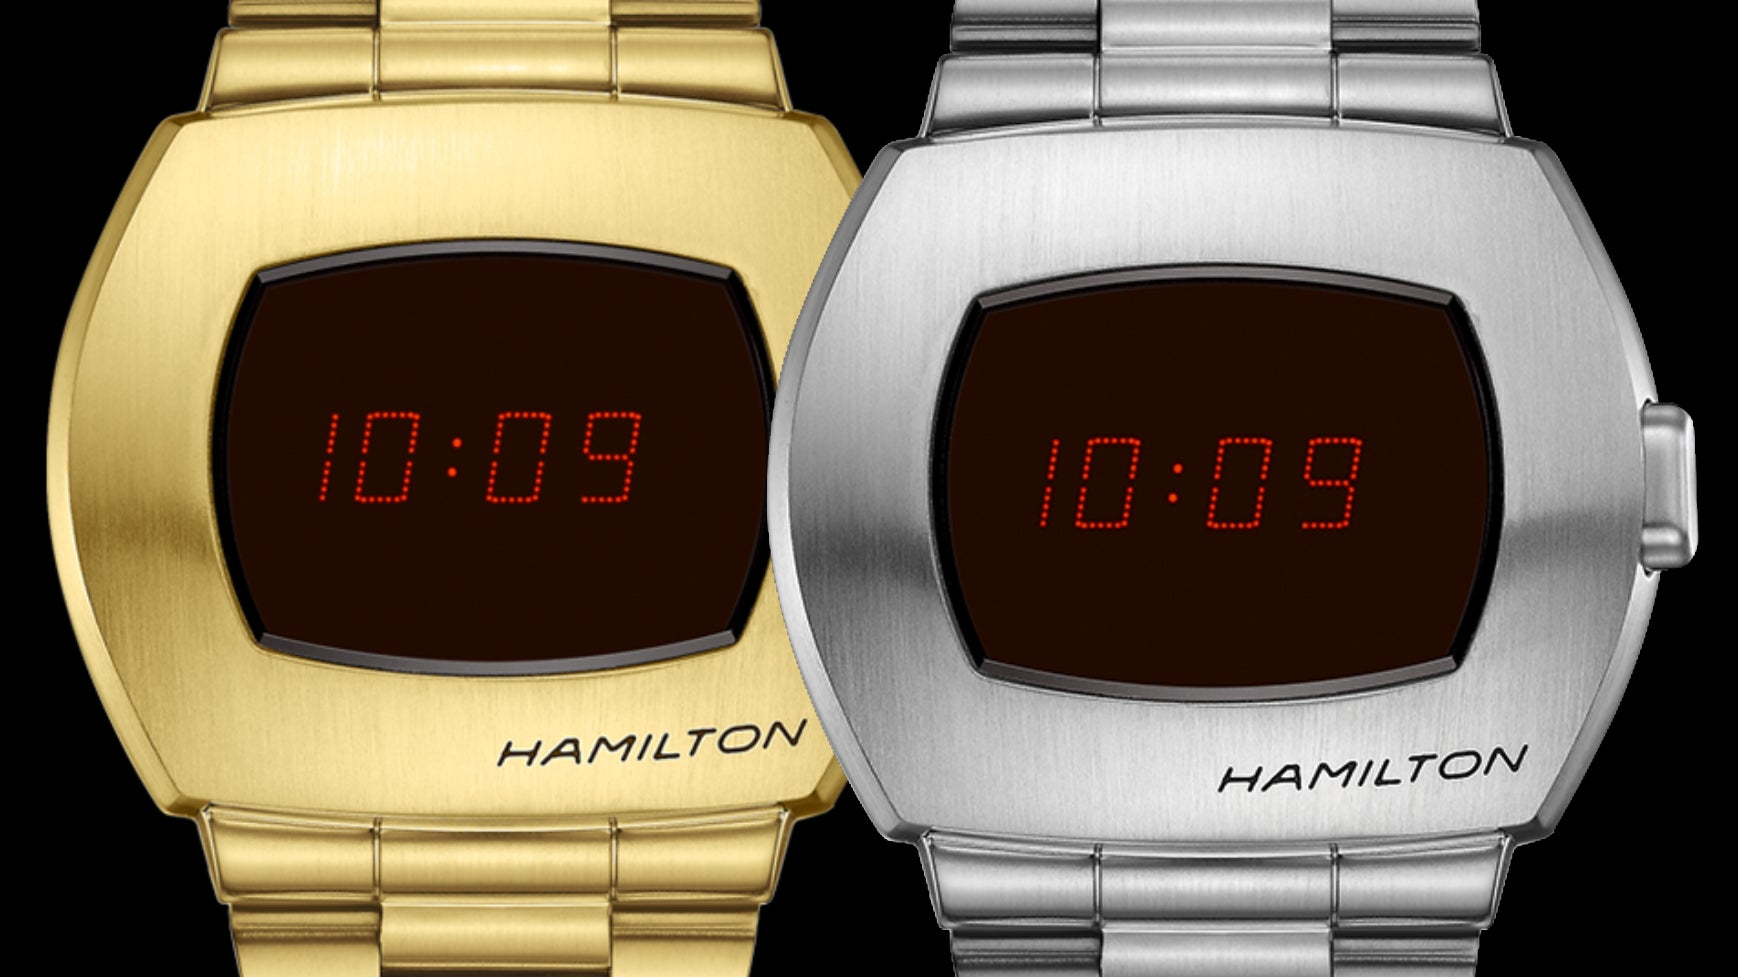 The World's First Digital Watch Is Coming Back… For $1,295